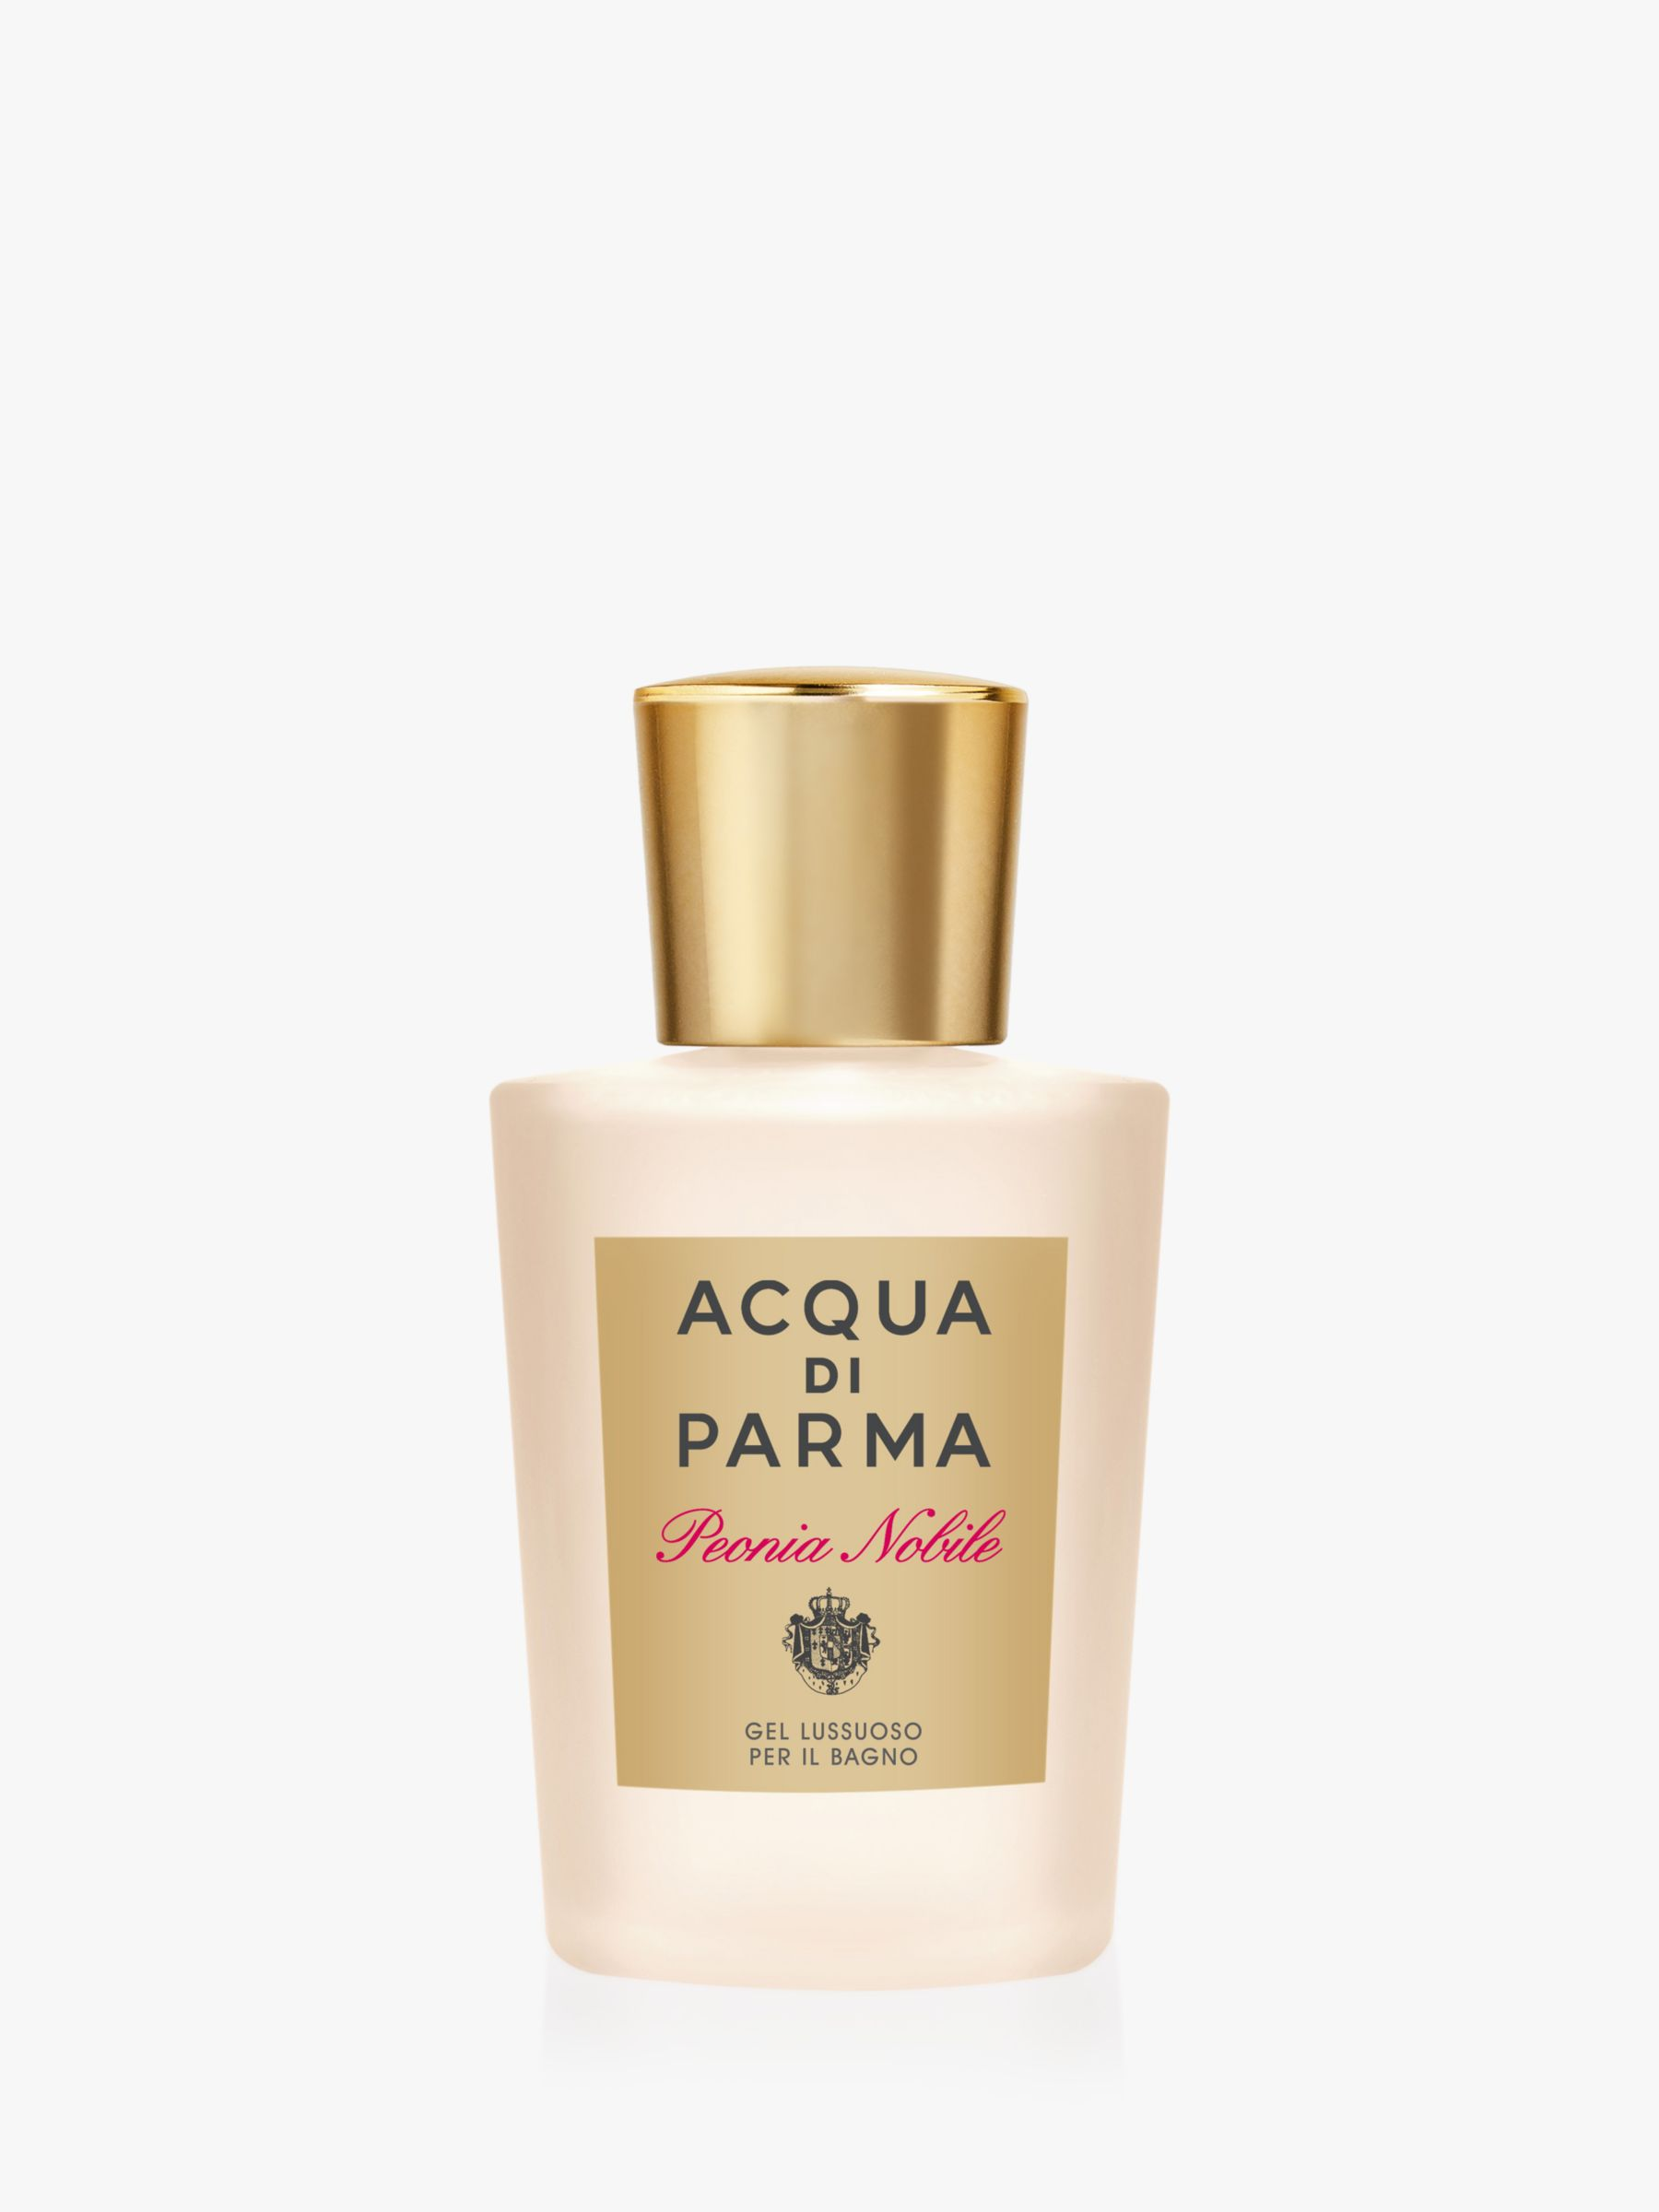 Acqua Di Parma Acqua di Parma Peonia Nobile Luxurious Bath Gel, 200ml